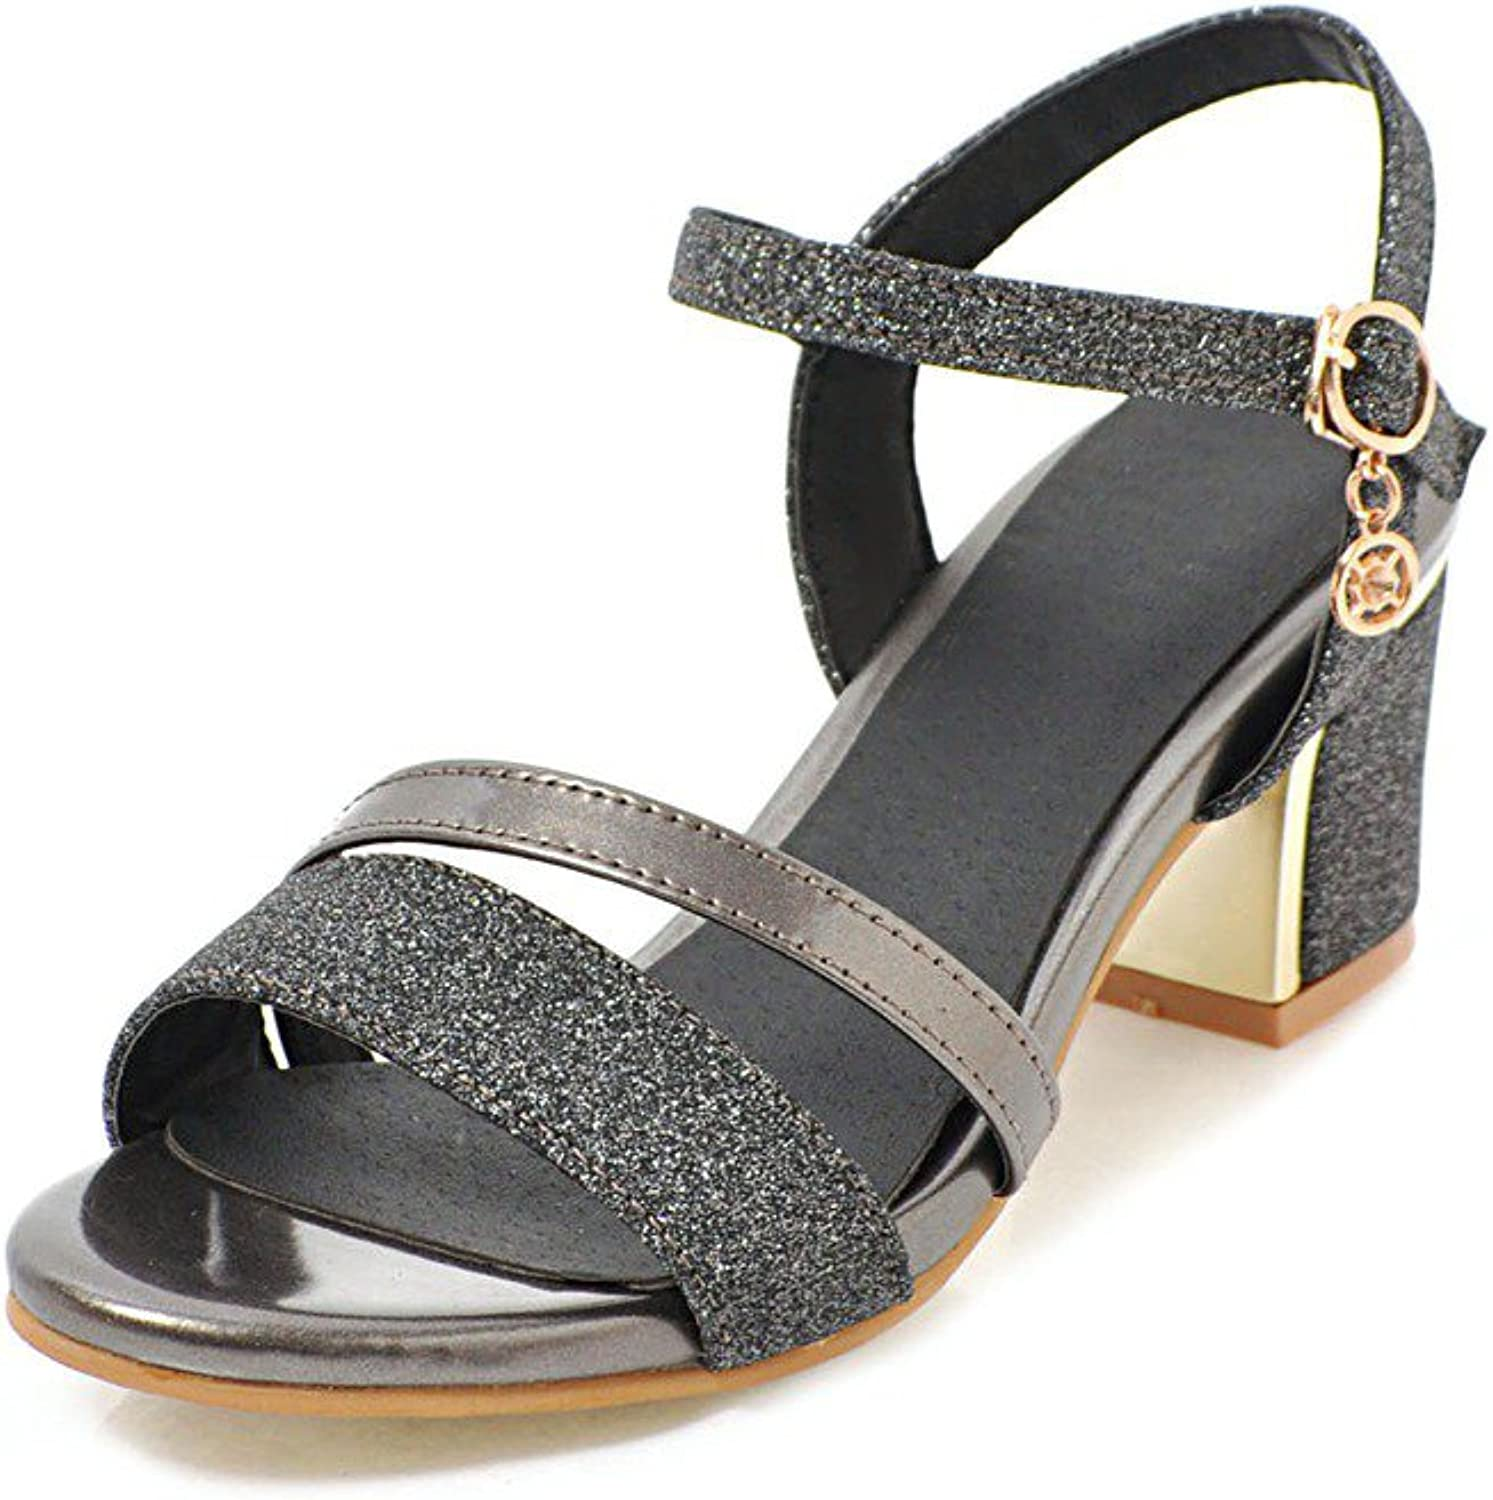 Women's shoes Leatherette Spring Summer Club shoes Sandals Chunky Heel Metallic Buckle for Casual Party & Evening Dress Red Black gold Silver